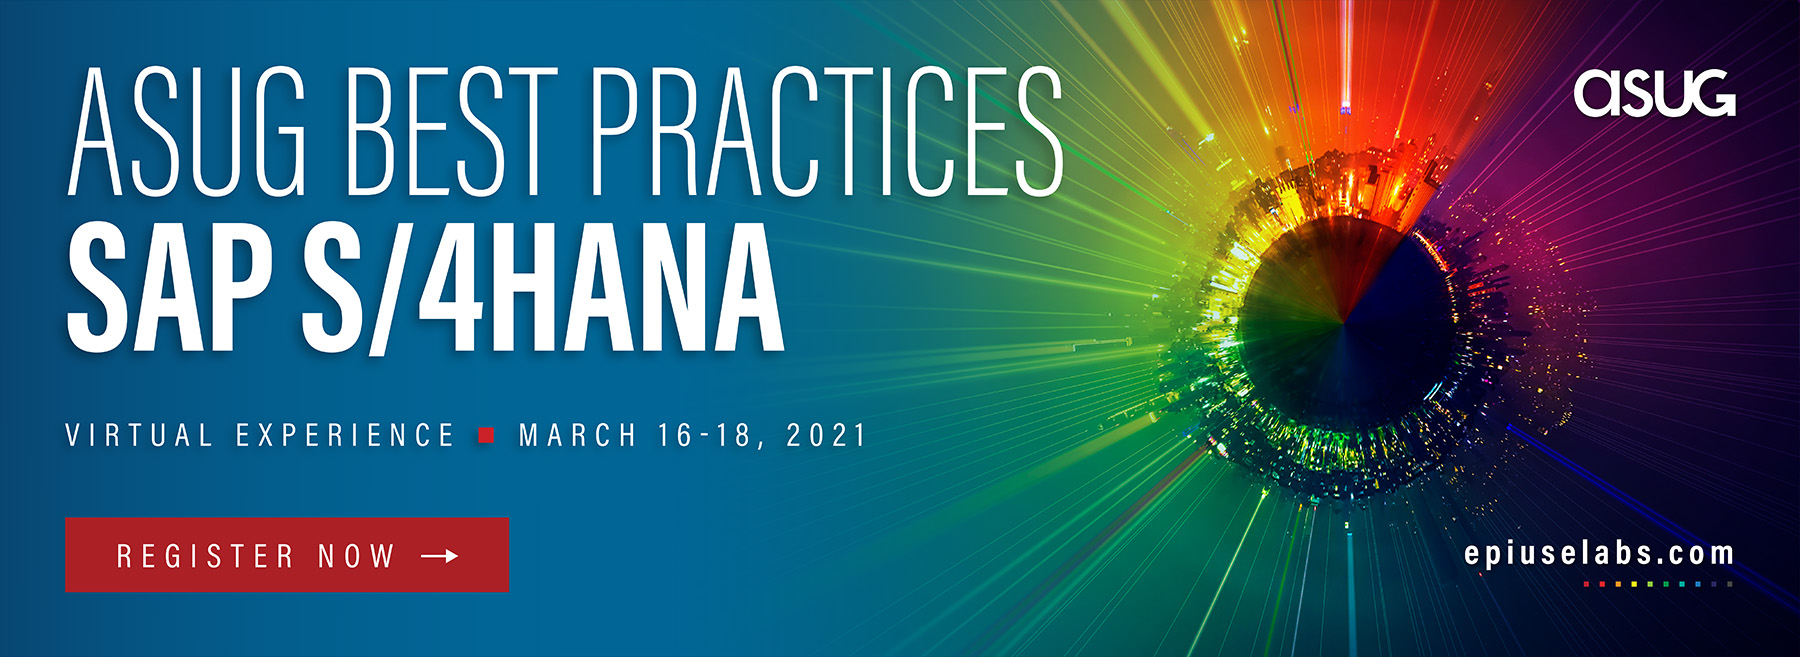 ASUG Best Practices for S/4HANA